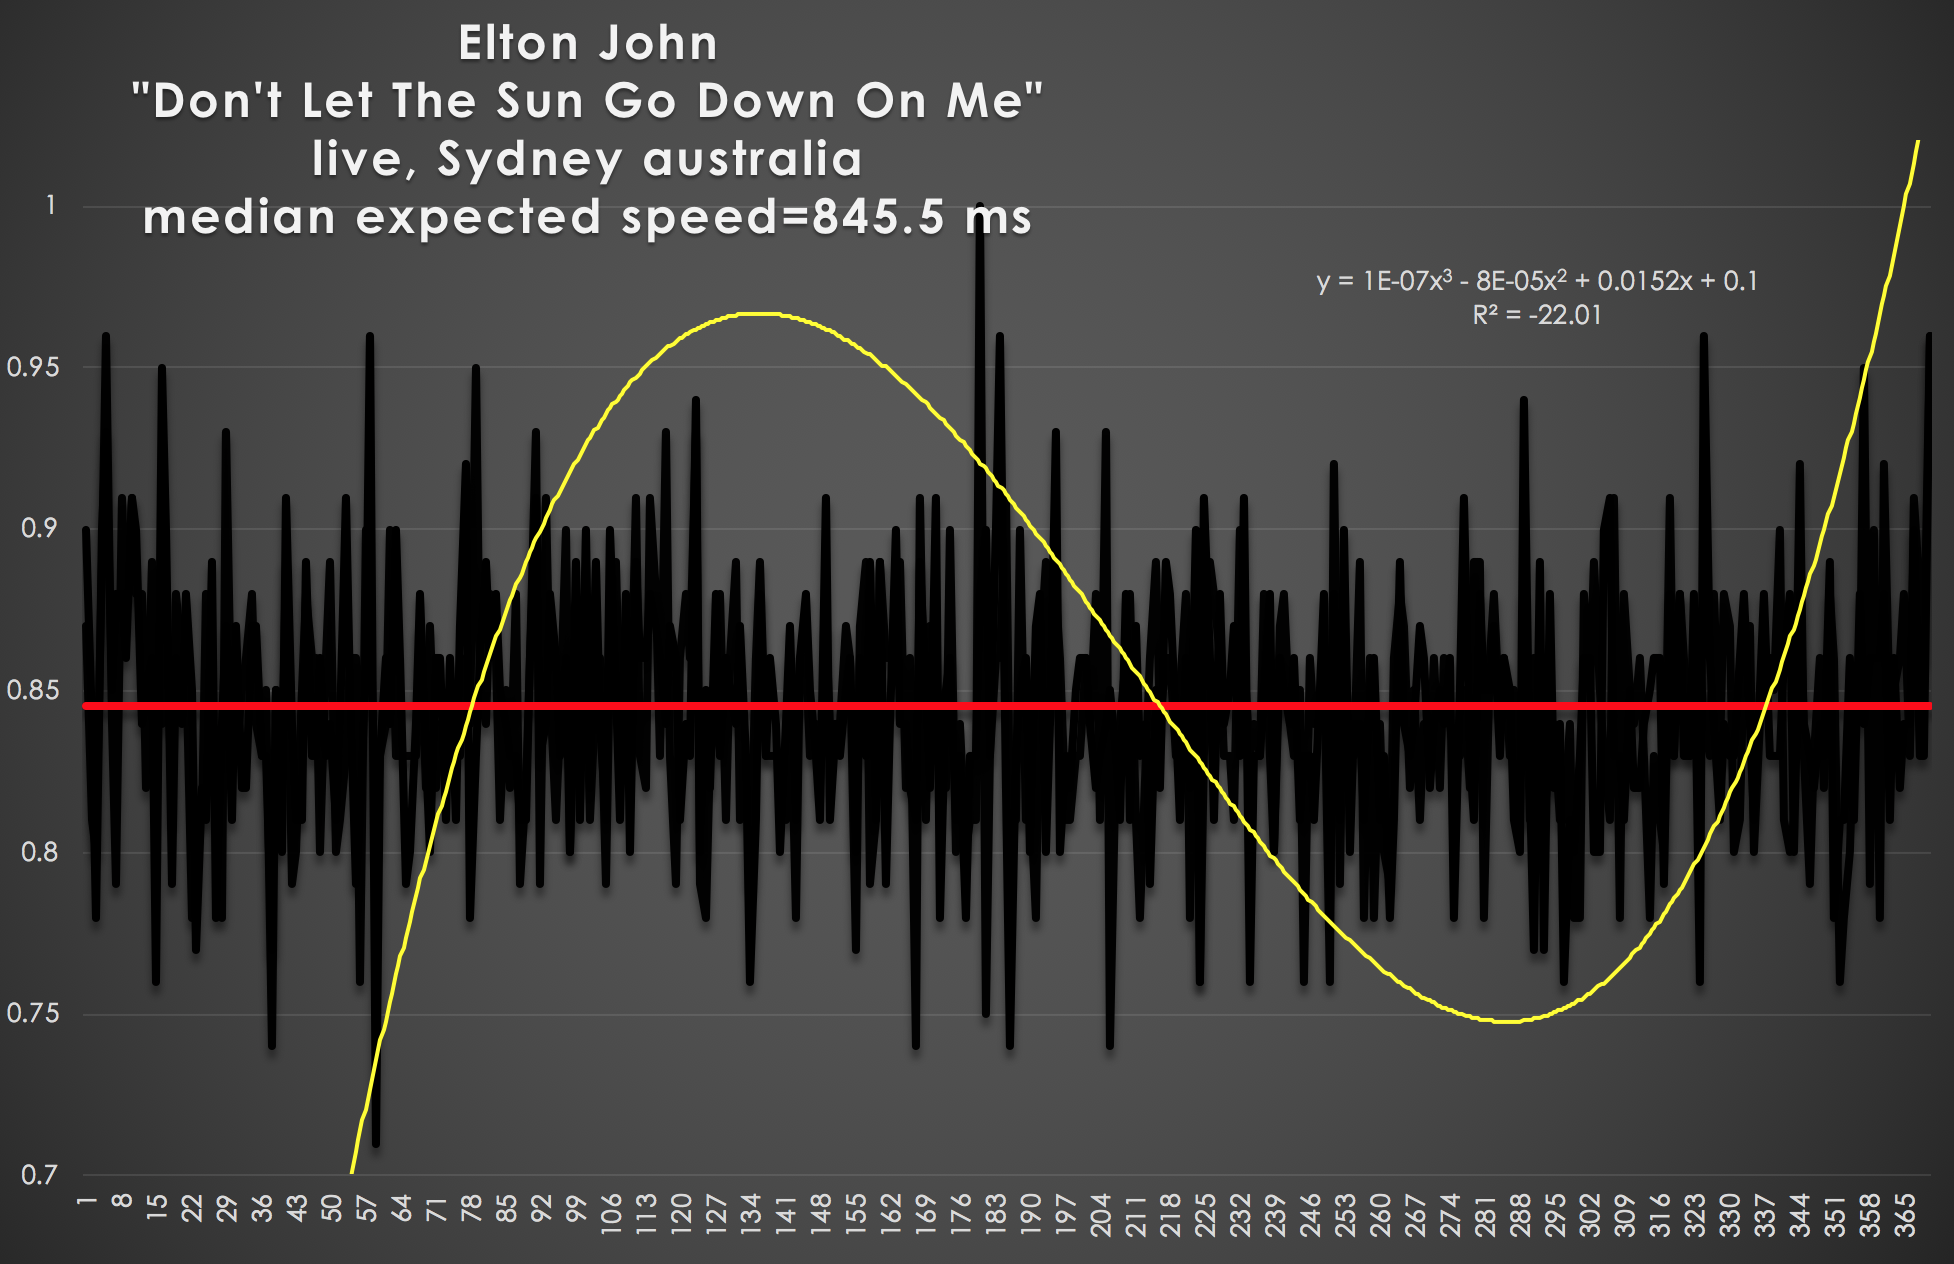 ELTON-JOHN-MATHERTON-HARMONIC-TEMPO-CHART-DONT-LET-THE-SUN-GO-DOWN-ON-ME-1012